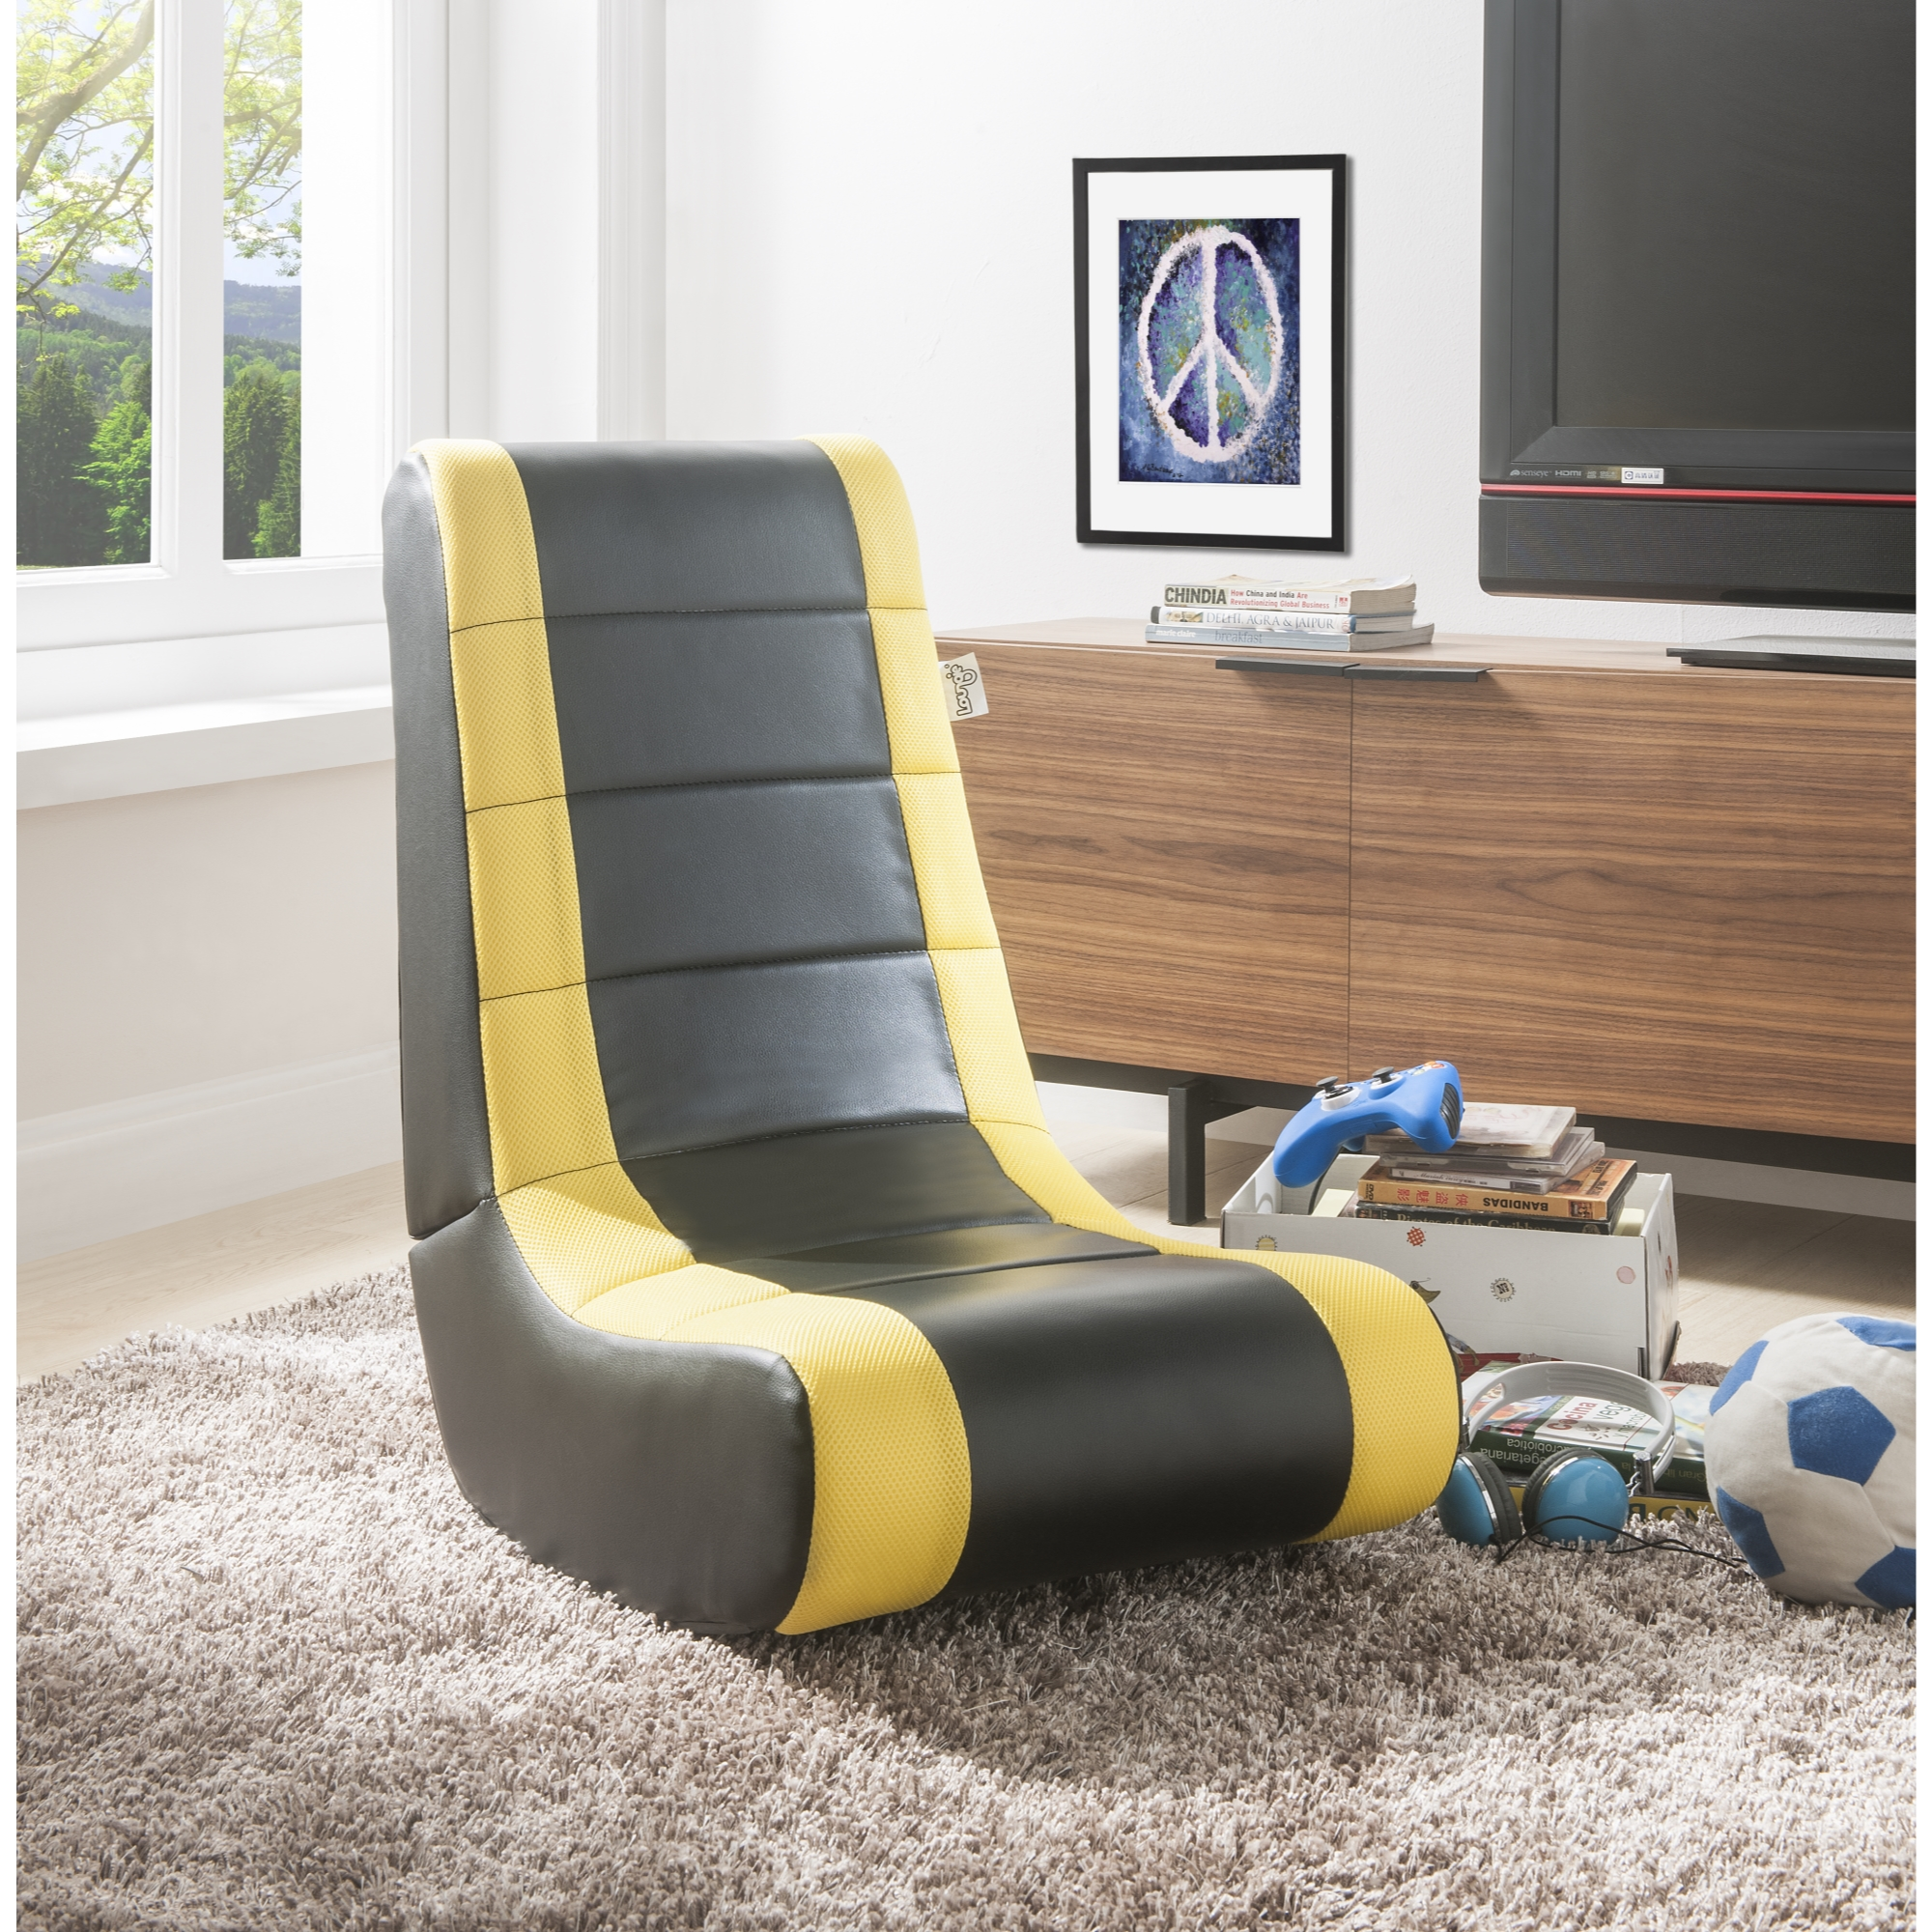 Loungie Black/Yellow PU Leather Chair For Kids, Teens, Adults, Boys Or Girls